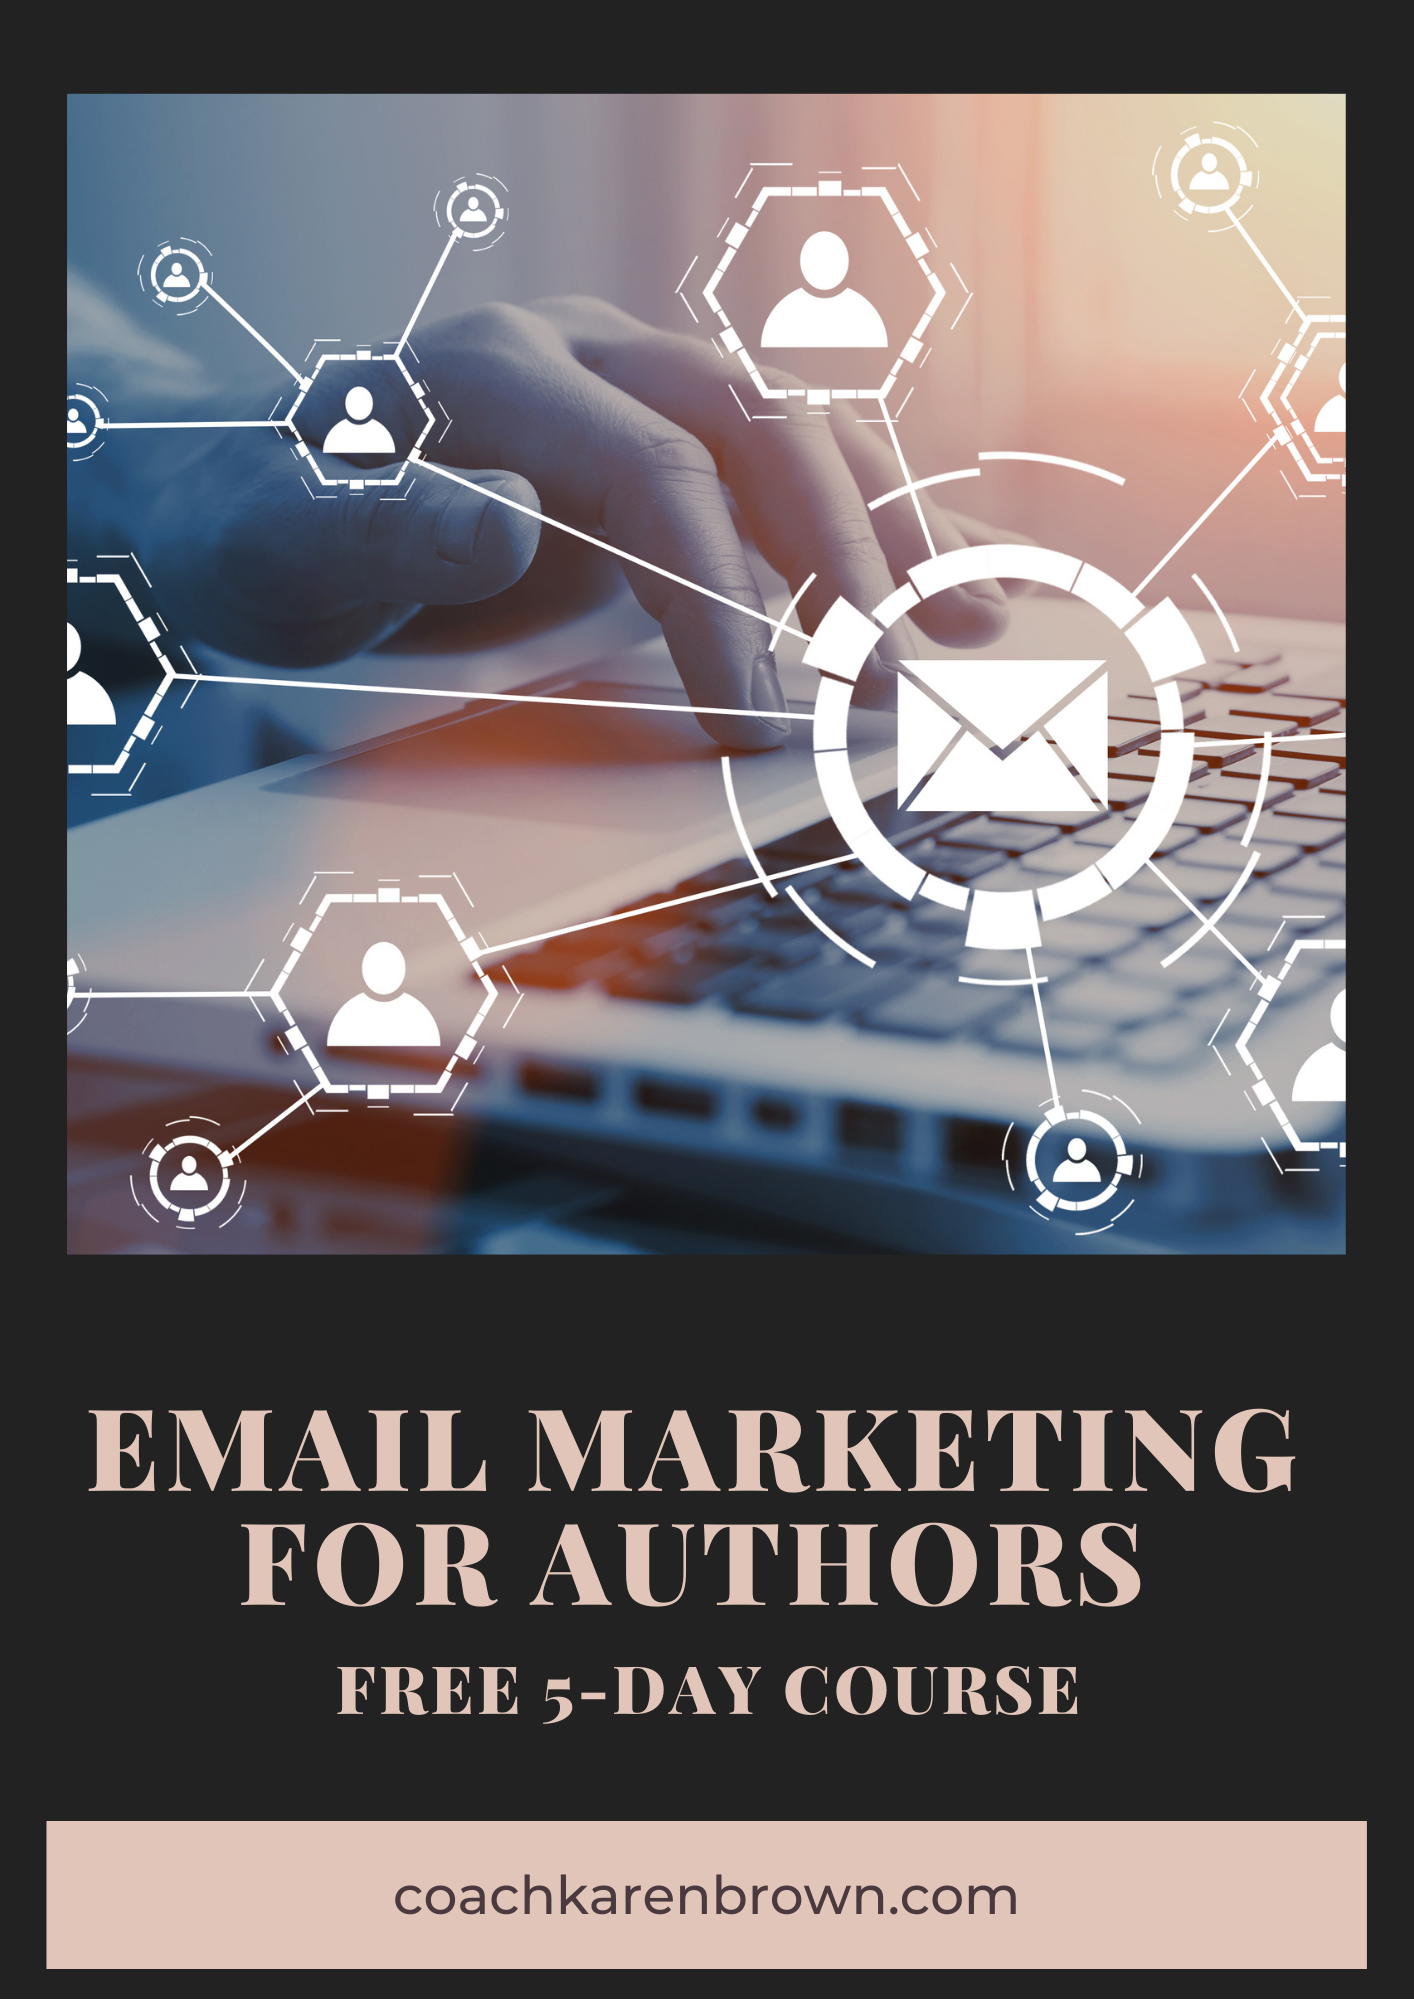 email marketing for authors free course